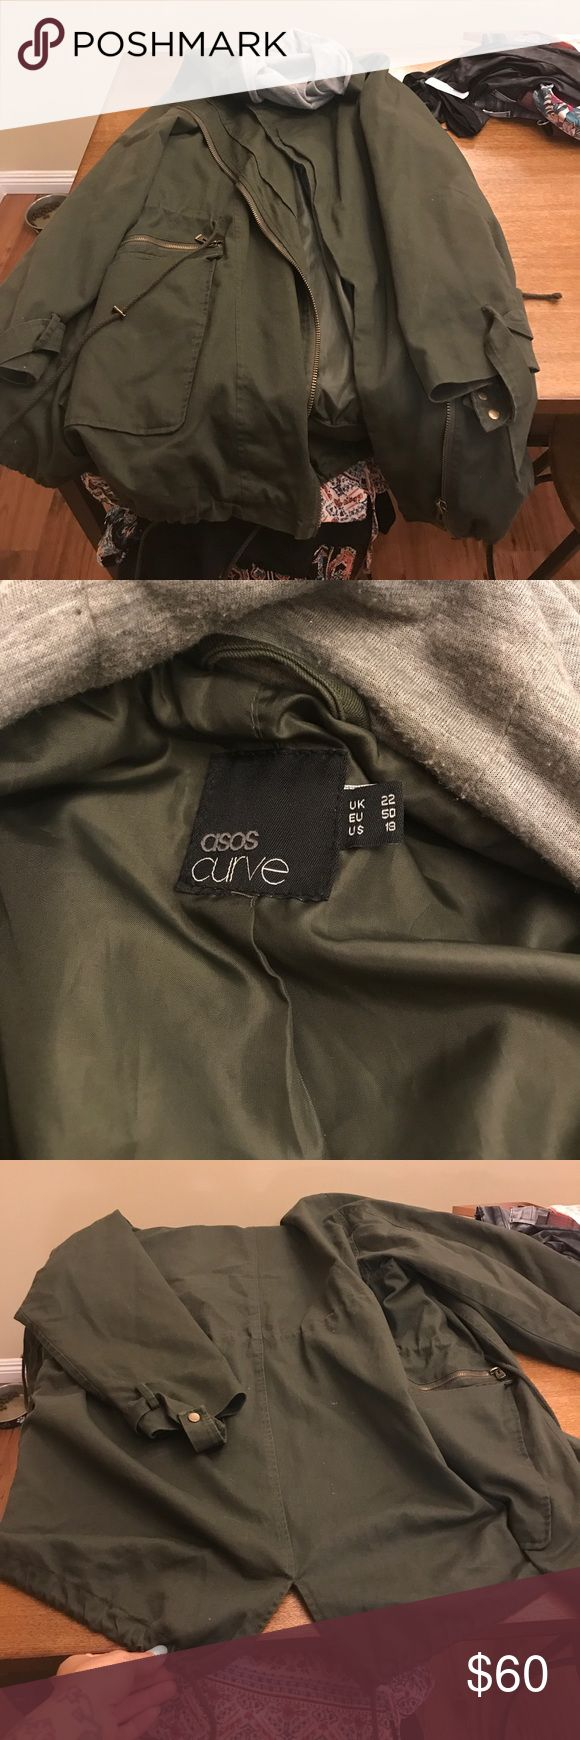 Asos Curve army green parka! Gently used Asos Curve parka! Size 18, long and oversized but an amazing jacket! Warm and comfortable! ASOS Curve Jackets & Coats